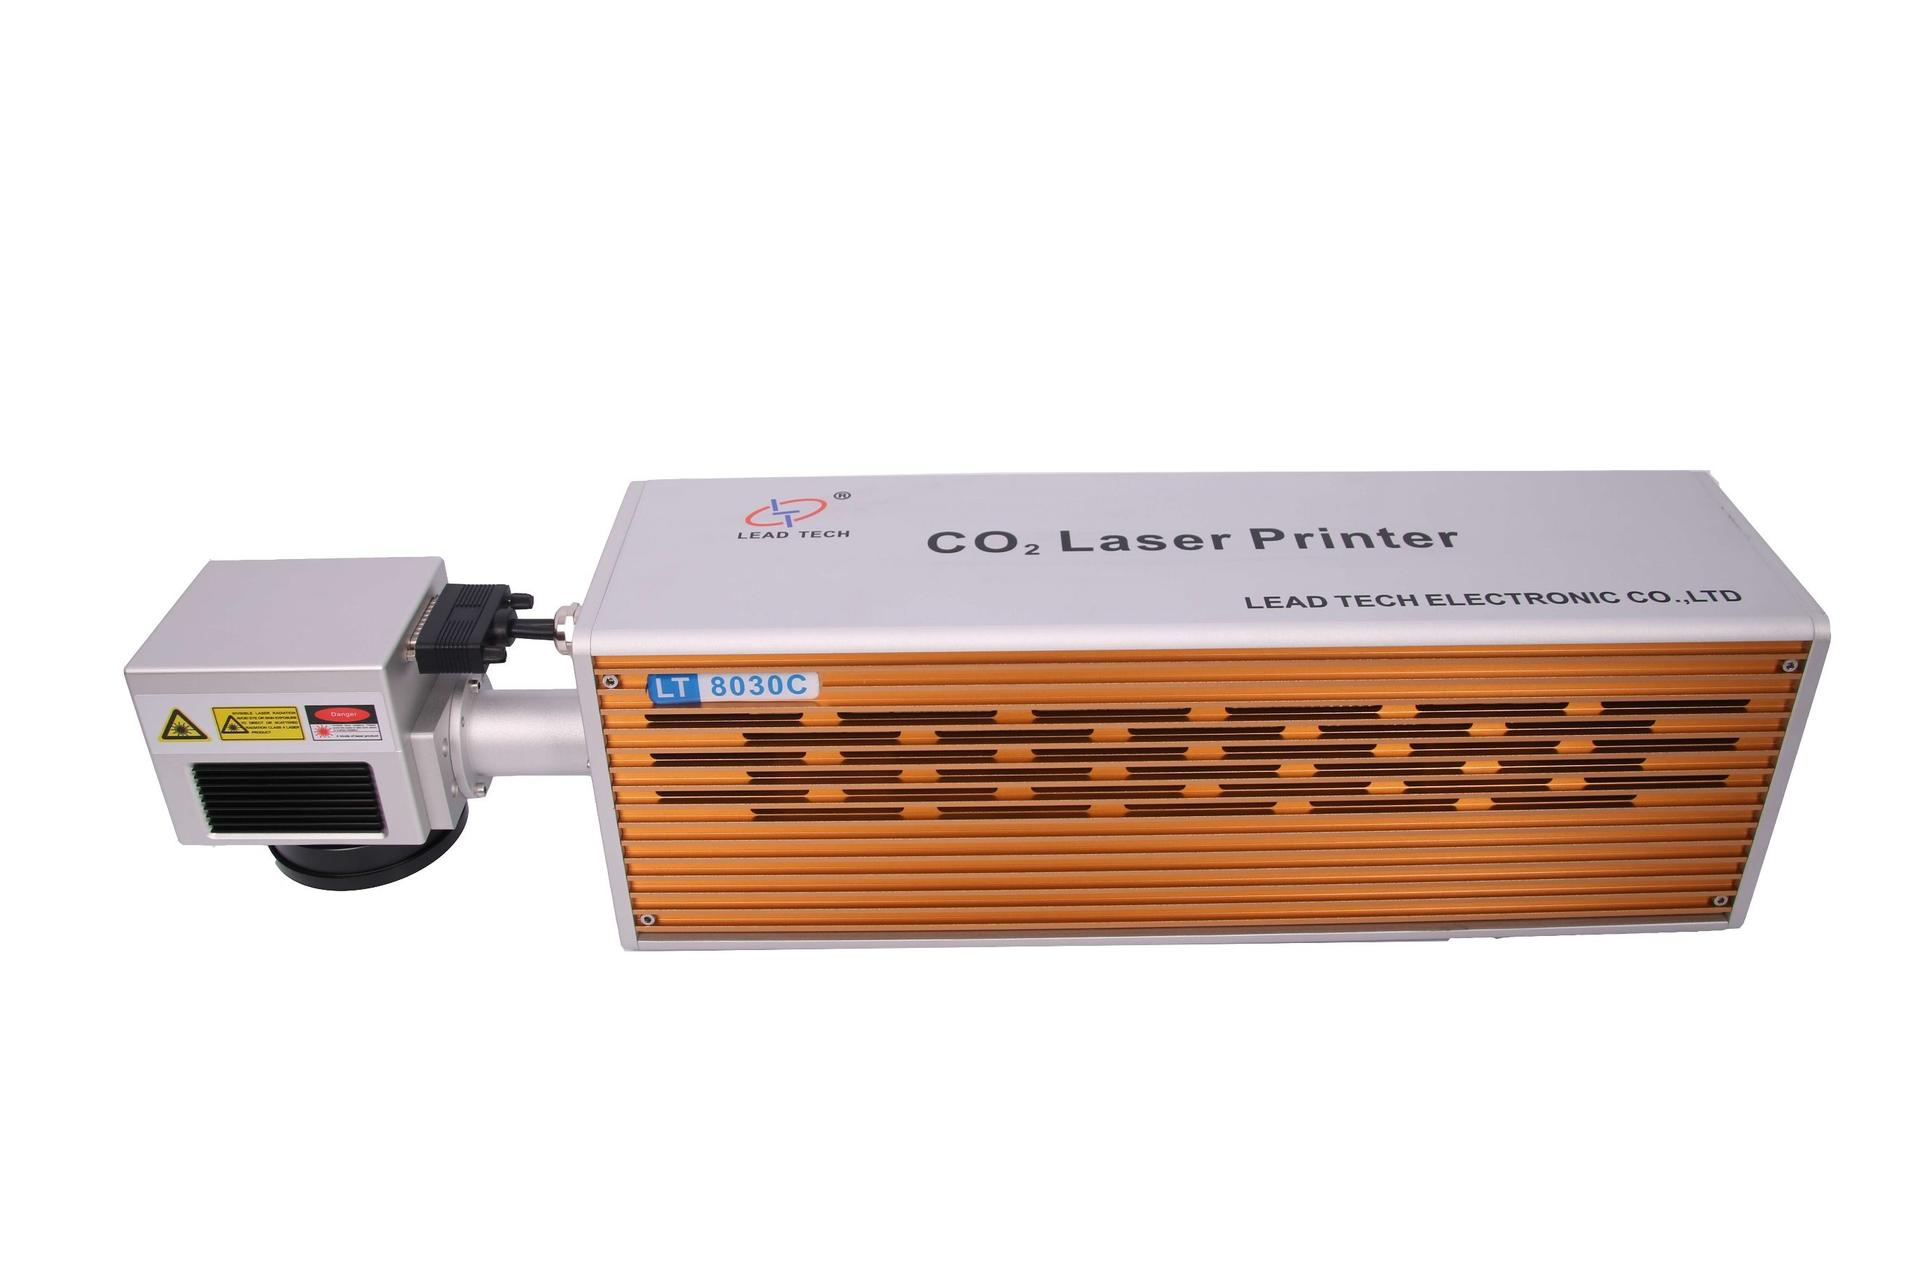 Lt8020c/Lt8030c CO2 High Speed Qr Code Date Character Laser Printer for Cables and Bottle